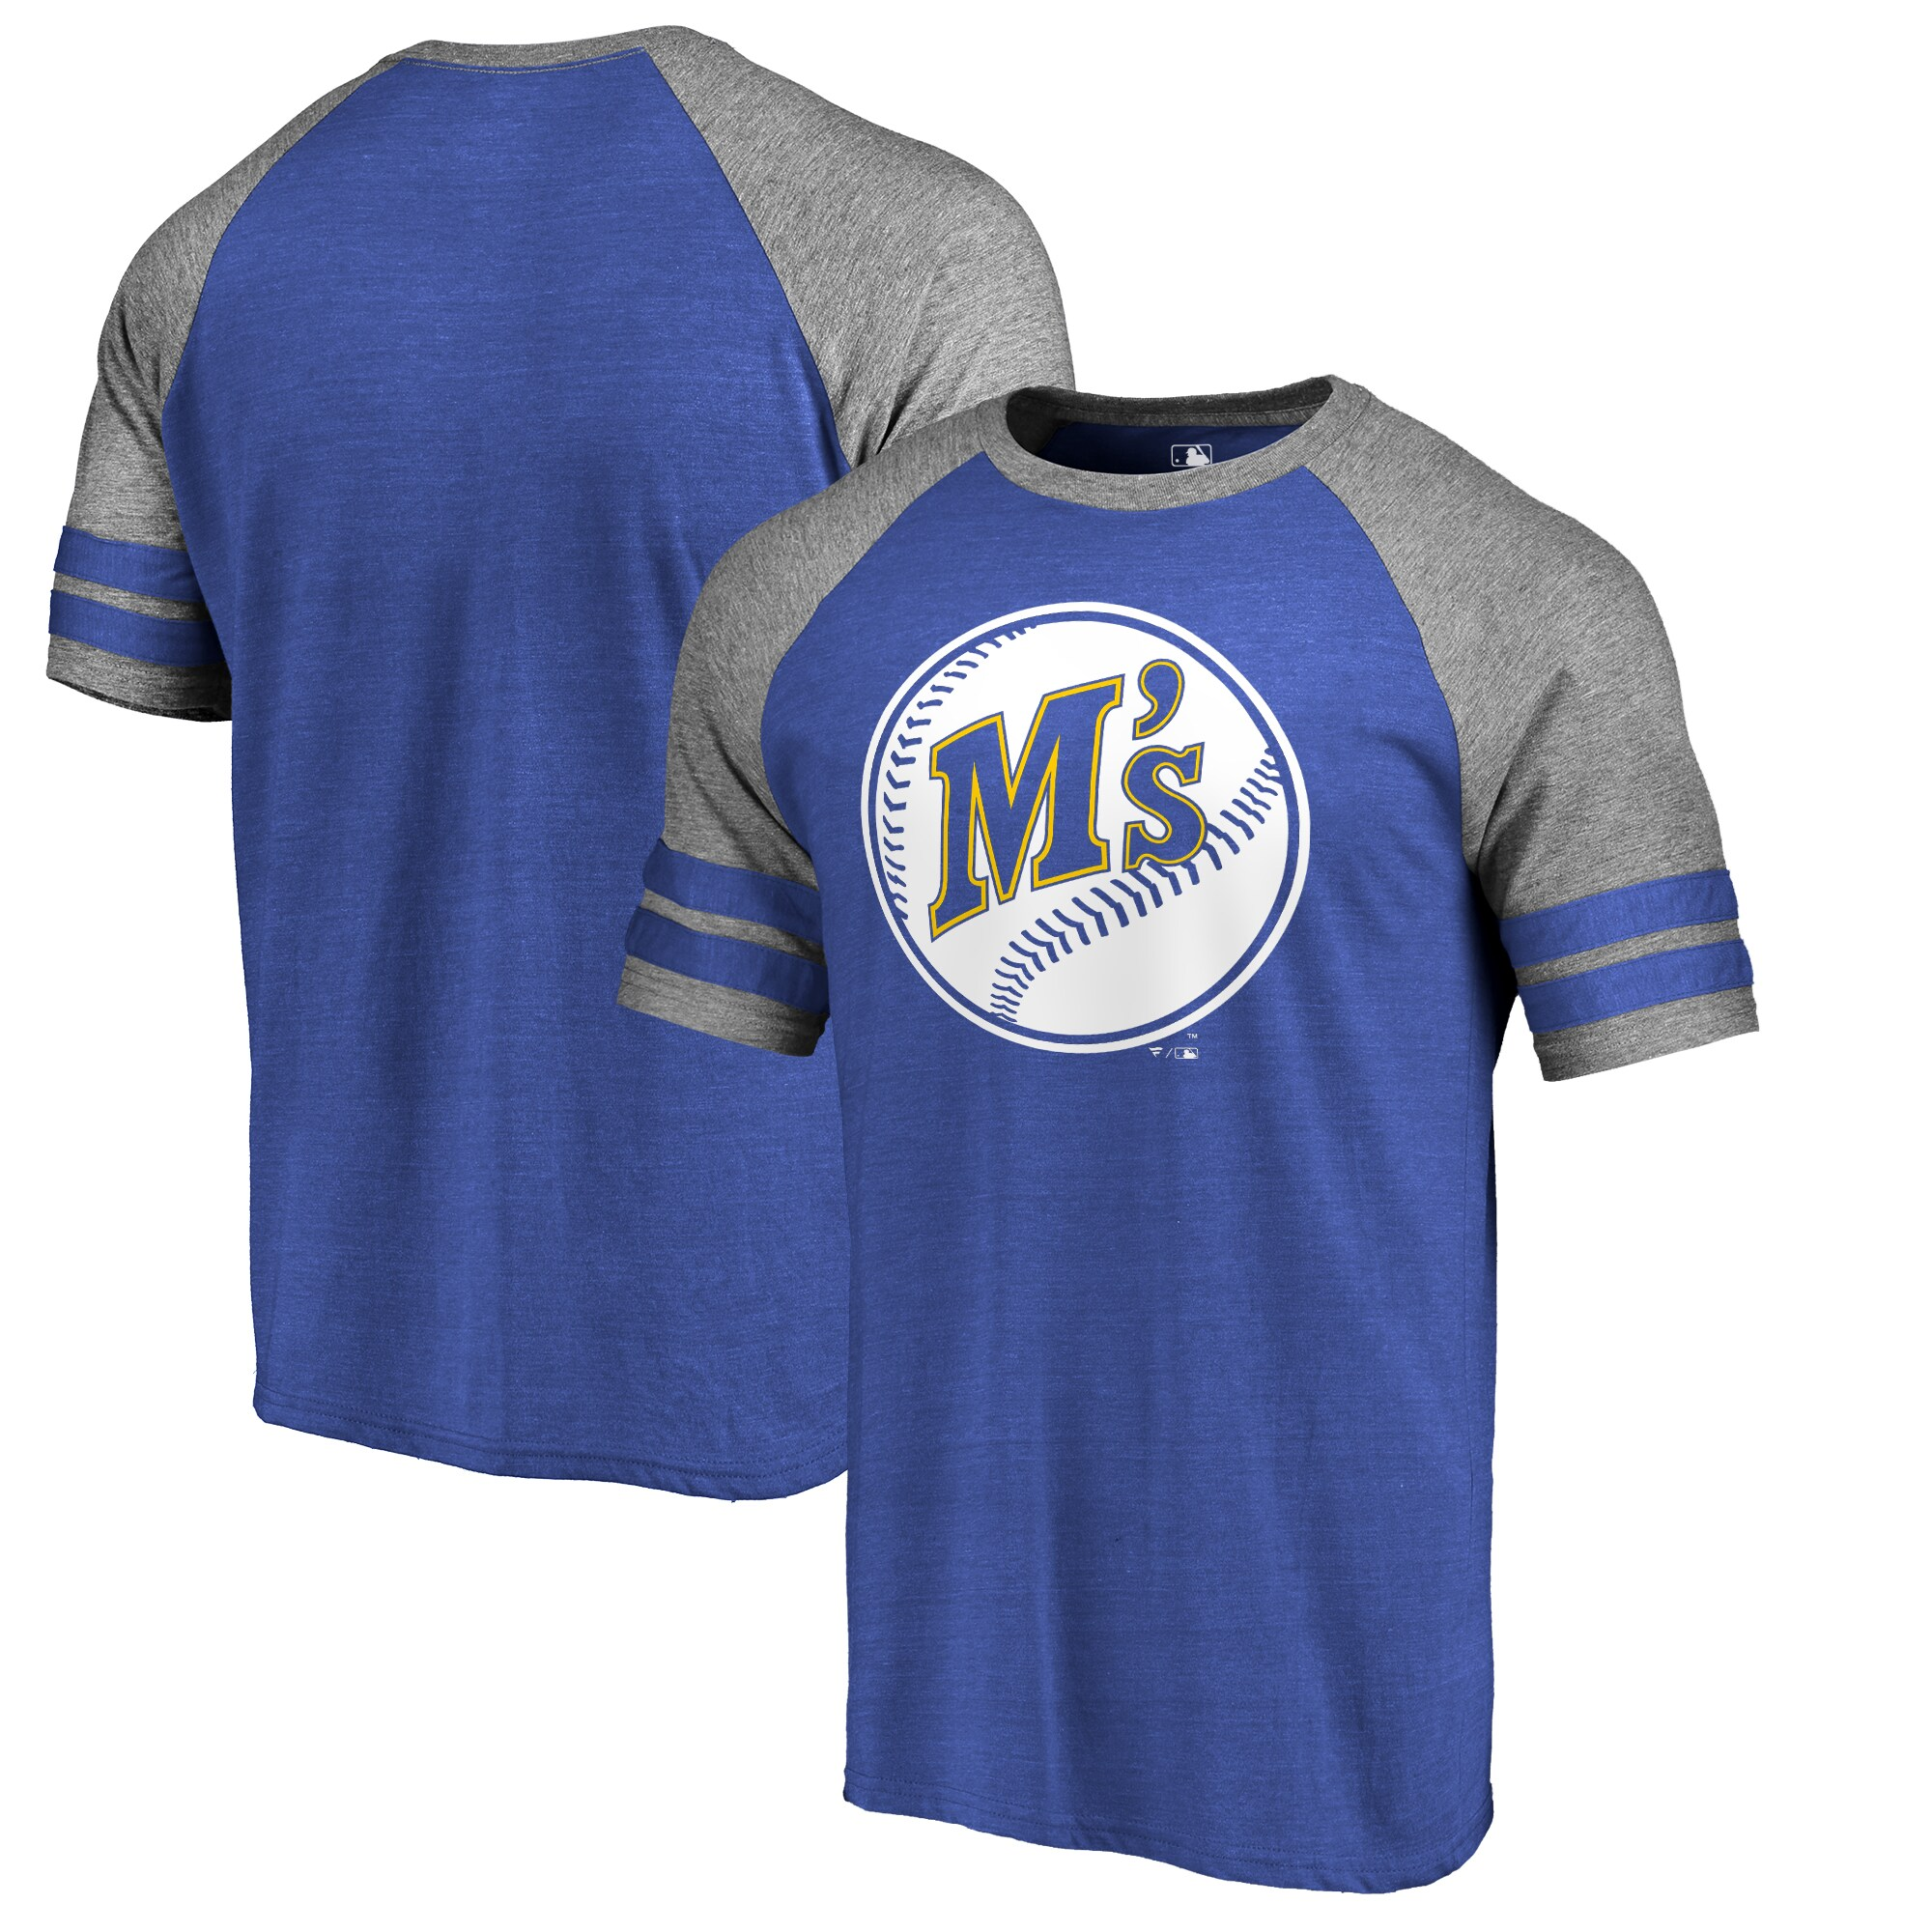 Seattle Mariners Fanatics Branded Huntington Cooperstown Collection Tri-Blend T-Shirt - Royal